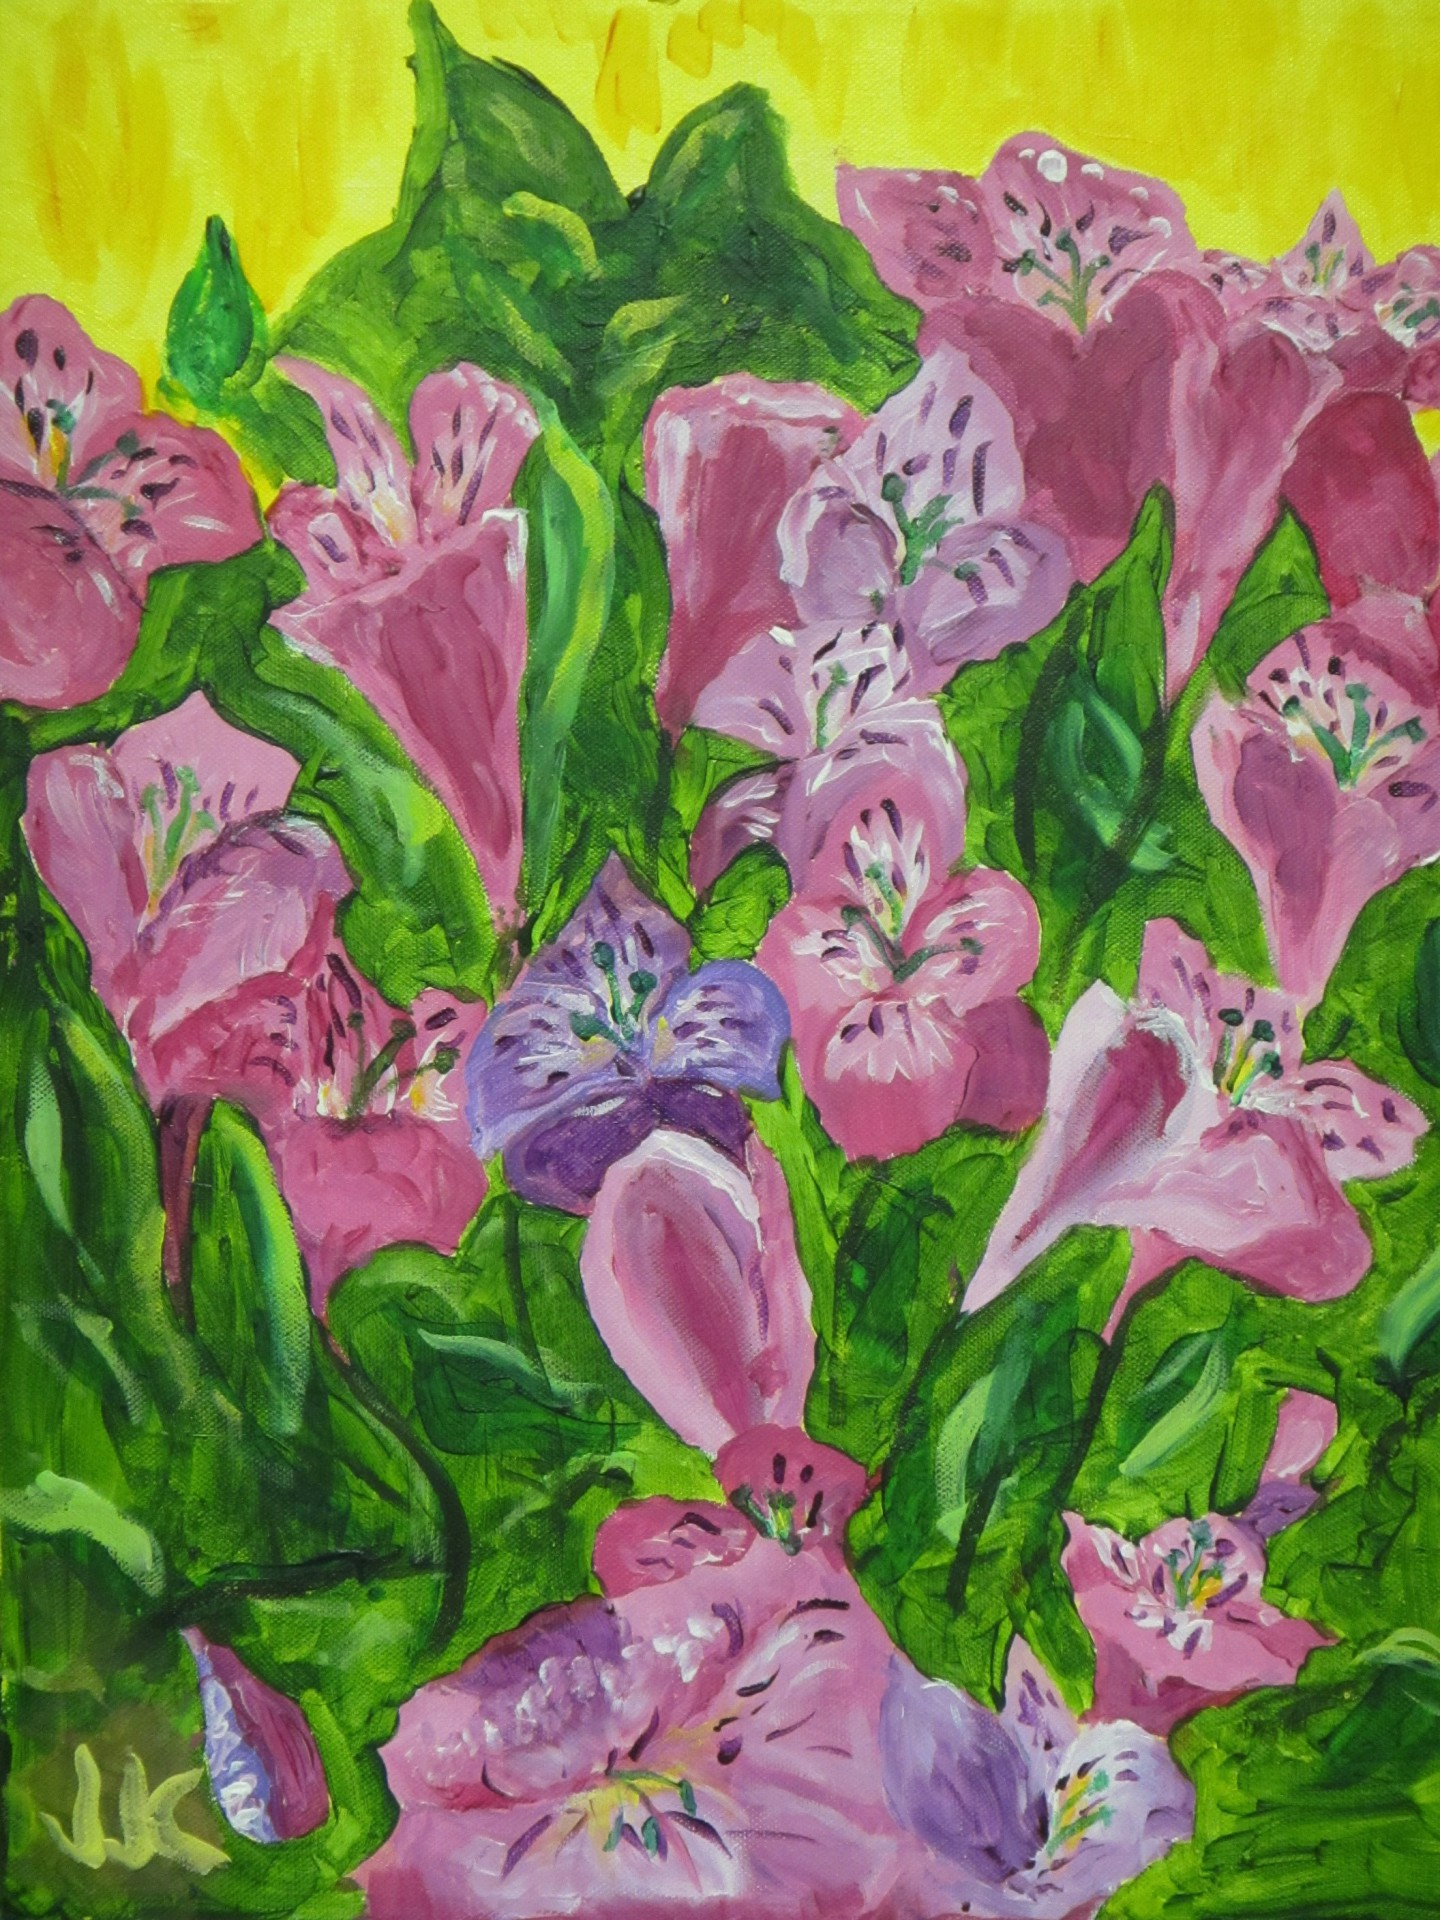 Acrylic painting on canvas of a bouquet of purple flowers.